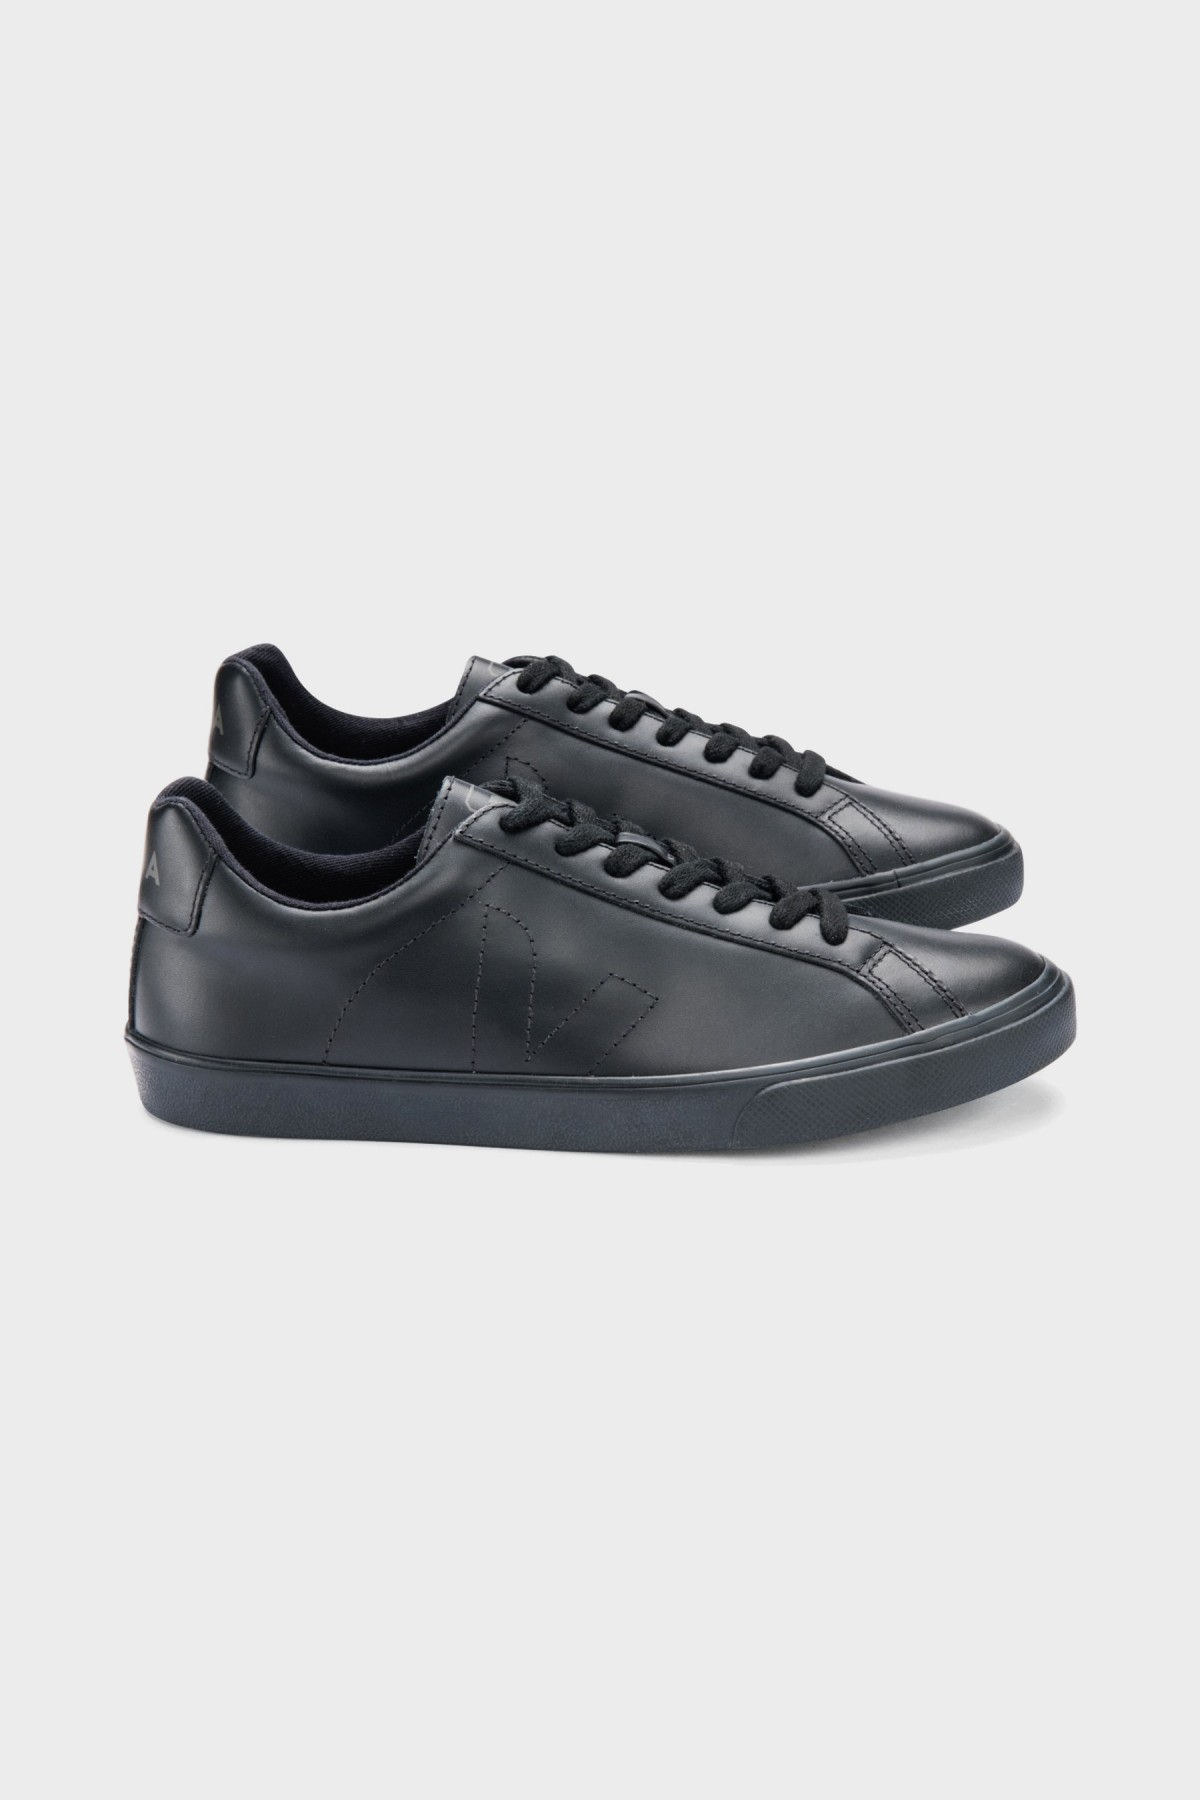 Veja Esplar Leather in Full Black